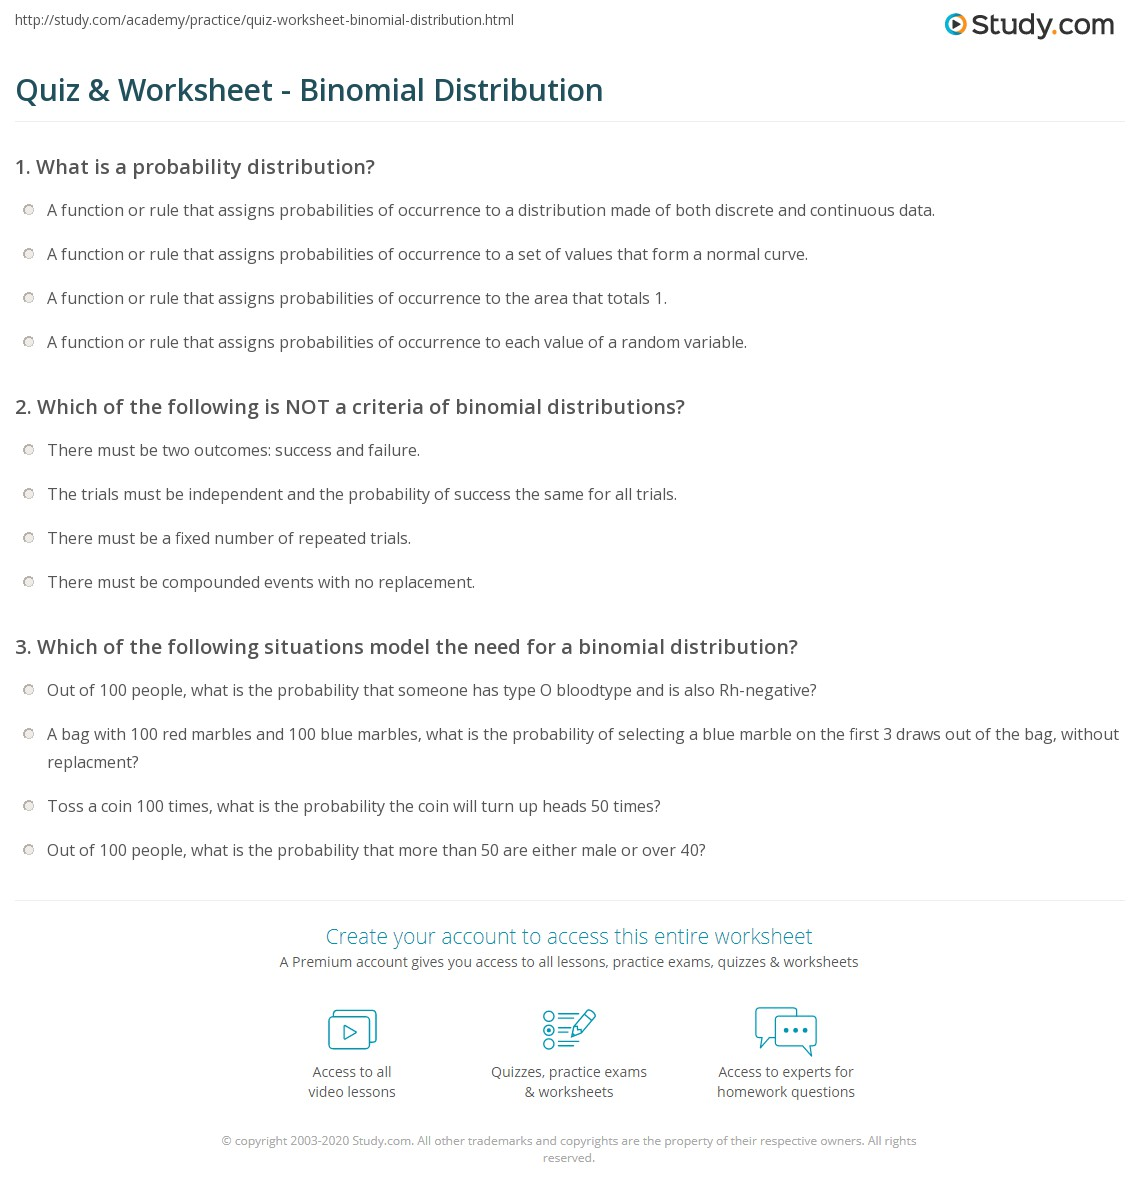 Binomial Distribution Worksheet - Oaklandeffect